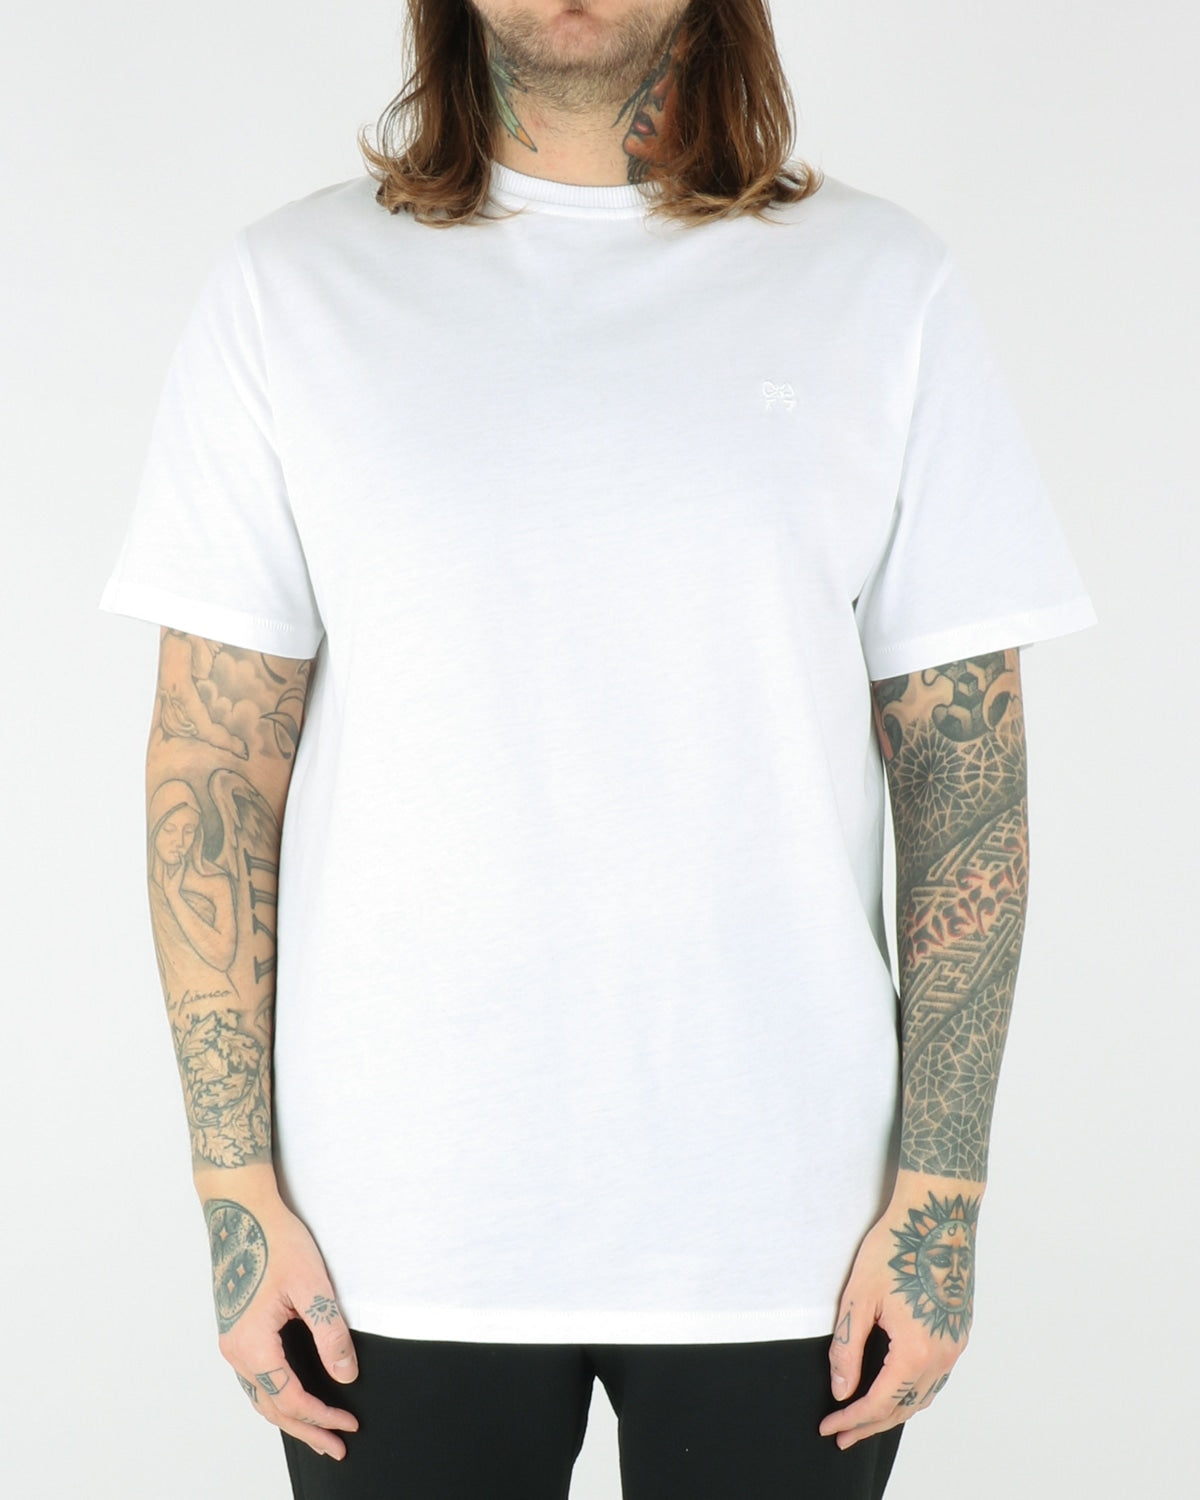 soulland_whatever t-shirt_white_view_1_3